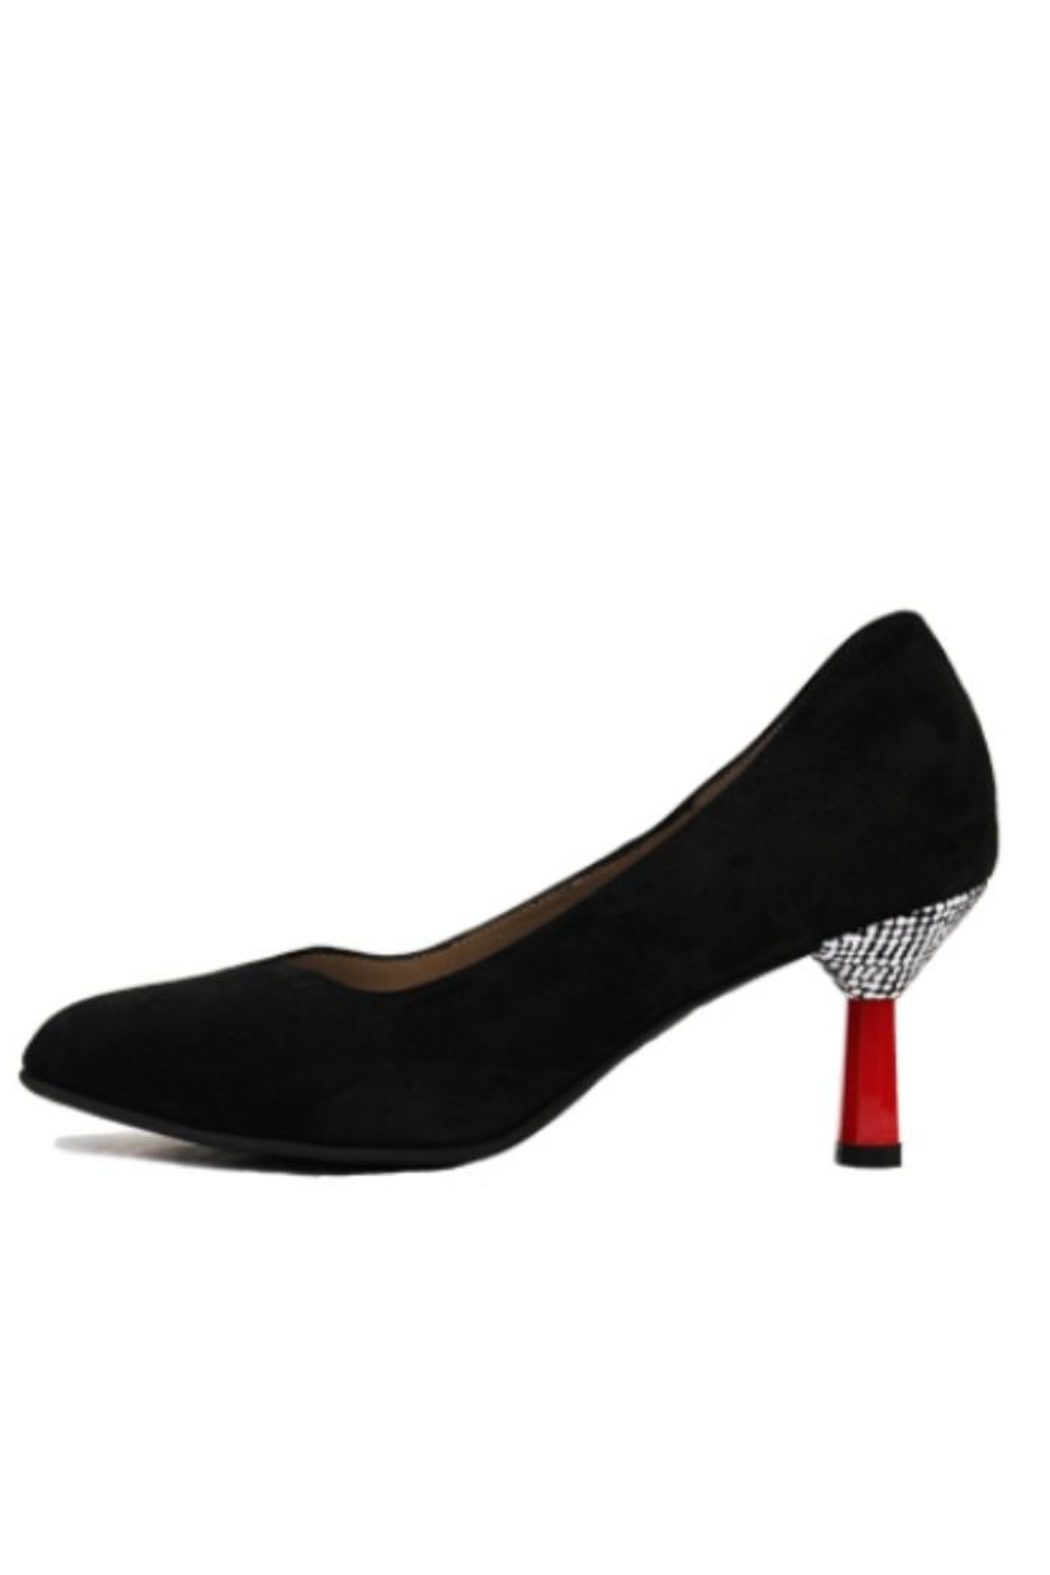 c47caa4a746 BeautiFeel Beautifeel Lia Pump from Philadelphia by Hot Foot ...